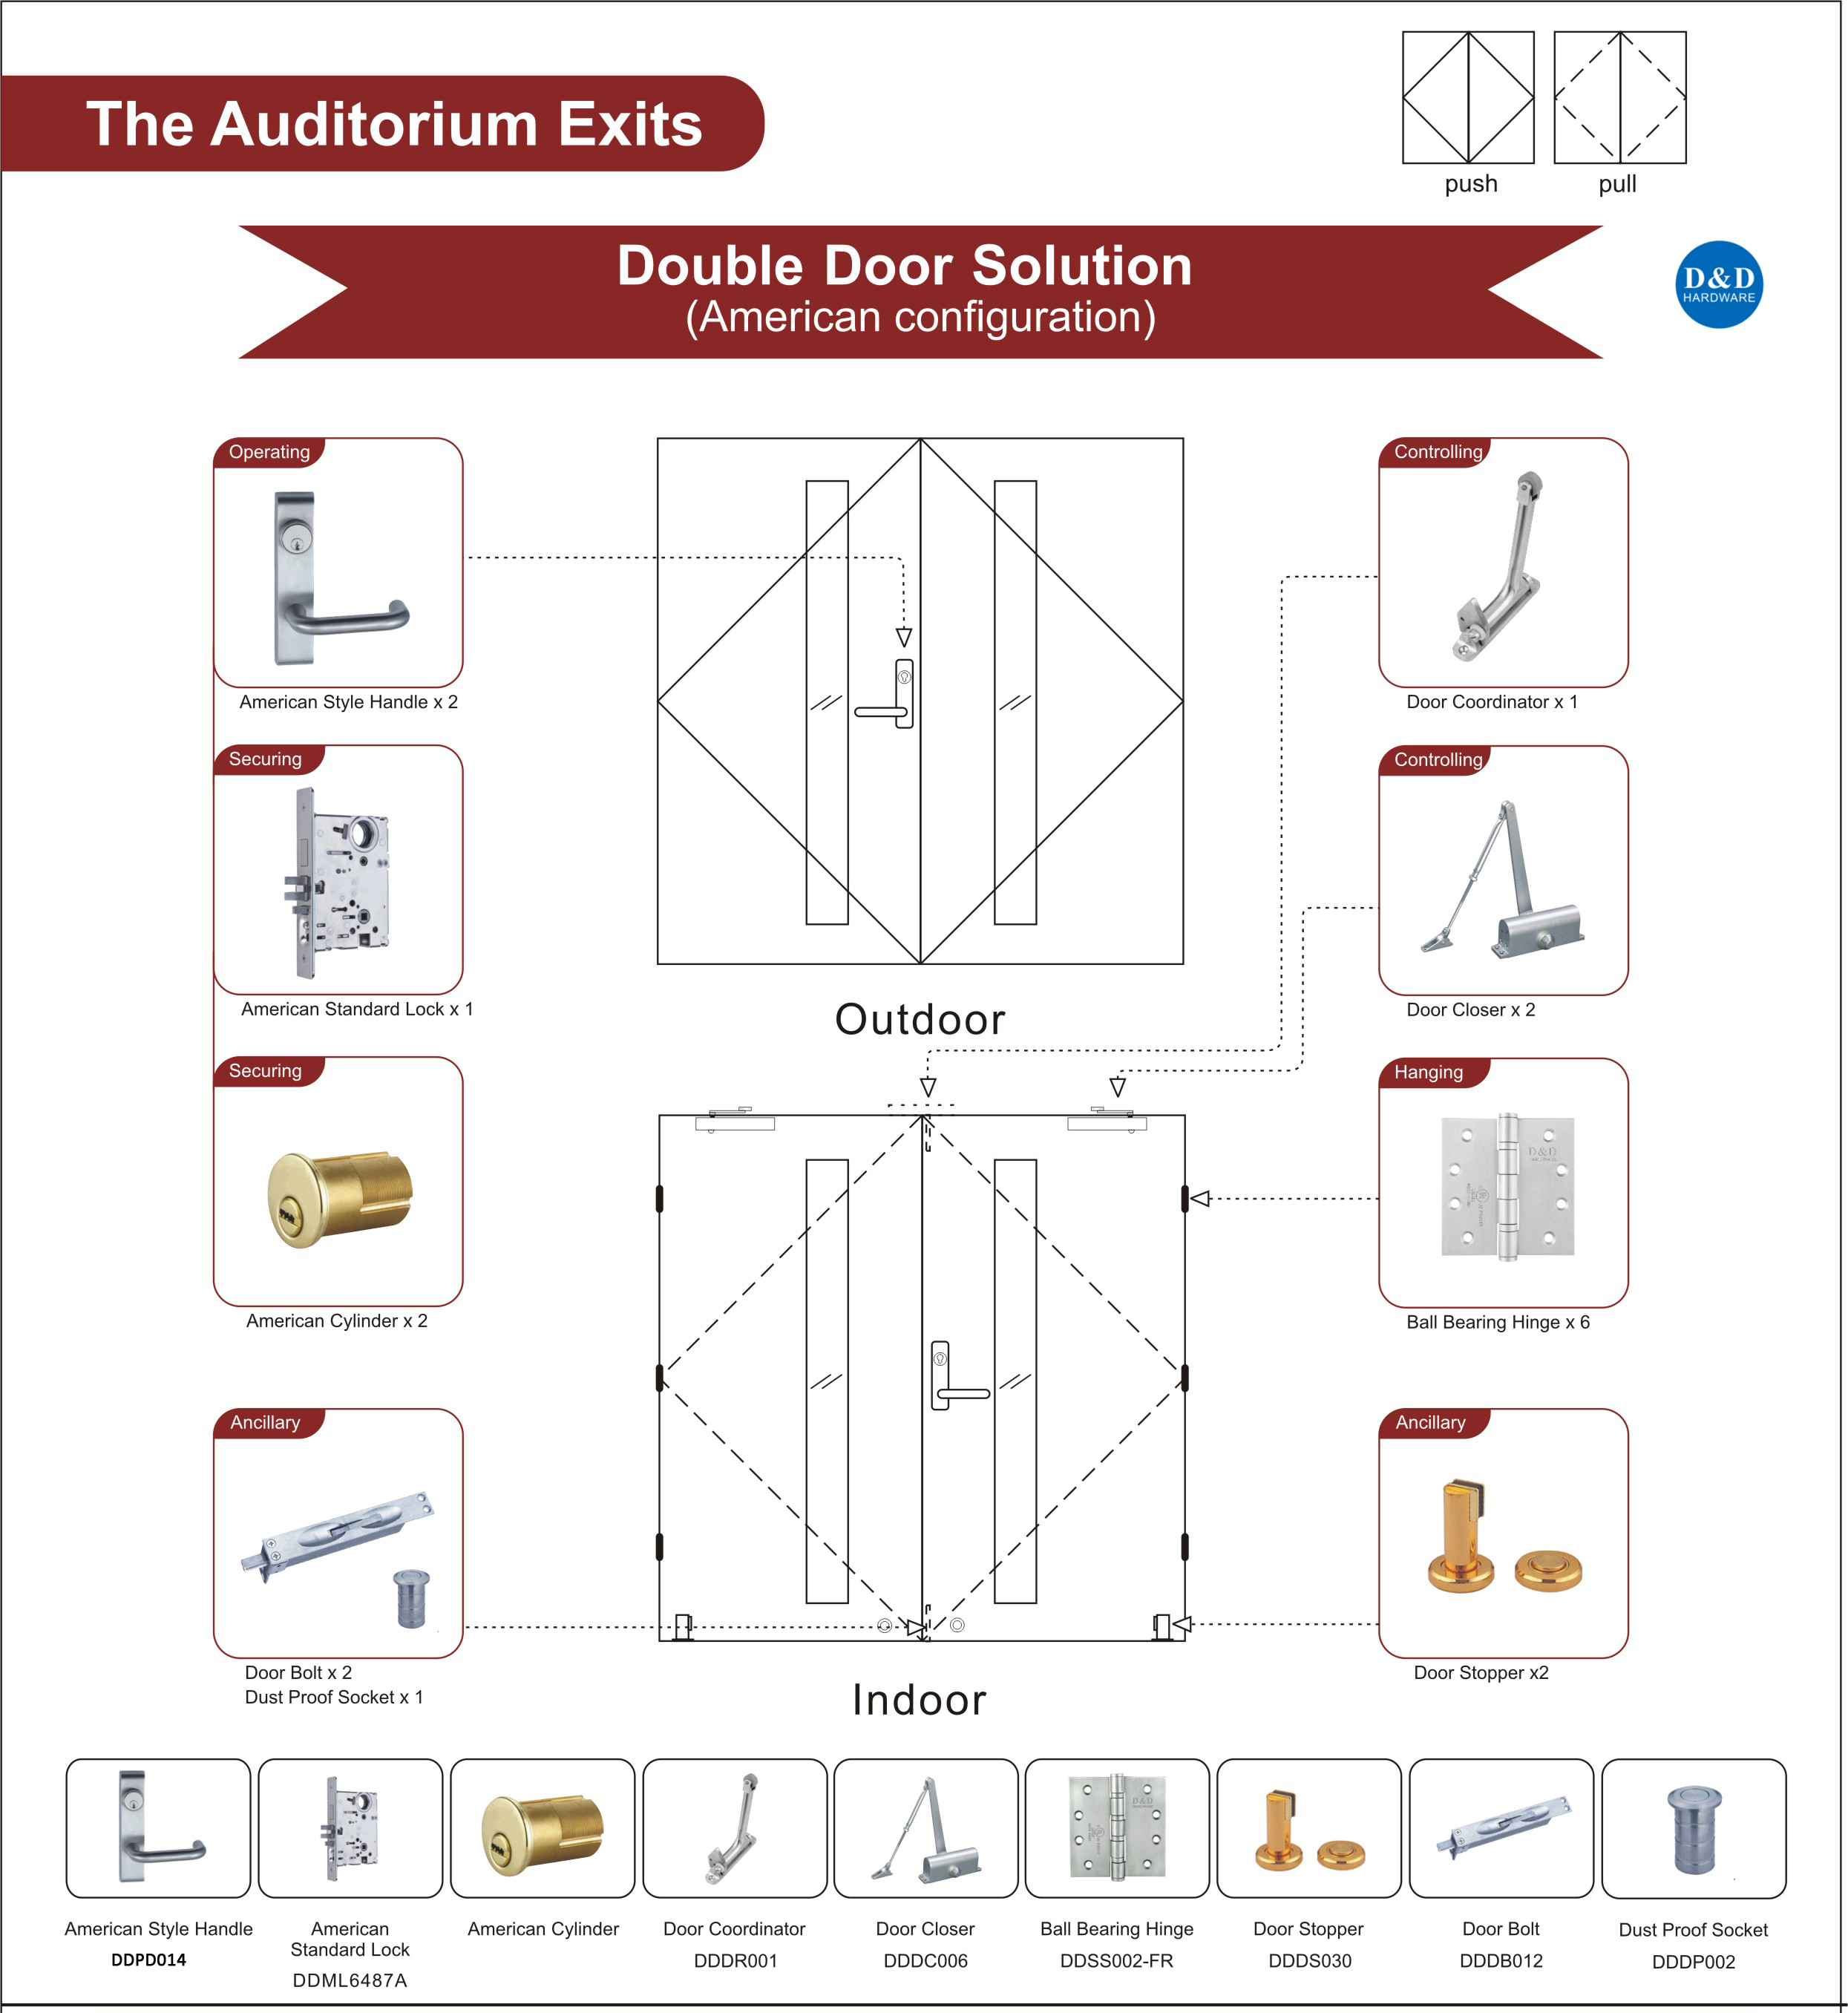 Auditorium Exits Door Solution-D&D Hardware